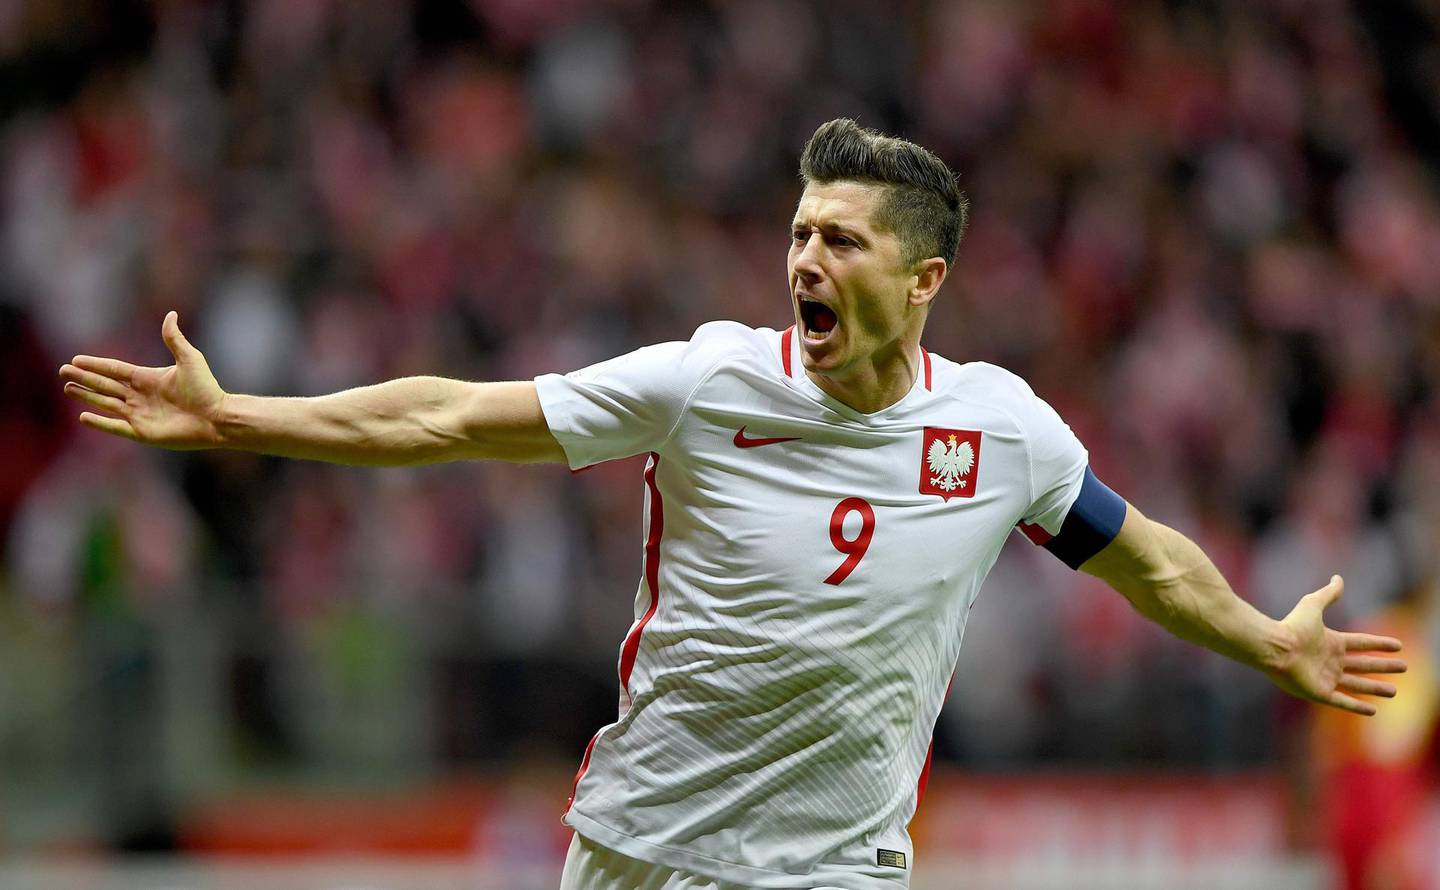 (FILES) In this file photo taken on October 8, 2017, Poland's forward Robert Lewandowski reacts after he scored a goal during the FIFA World Cup 2018 qualification football match between Poland and Montenegro in Warsaw. / AFP / JANEK SKARZYNSKI